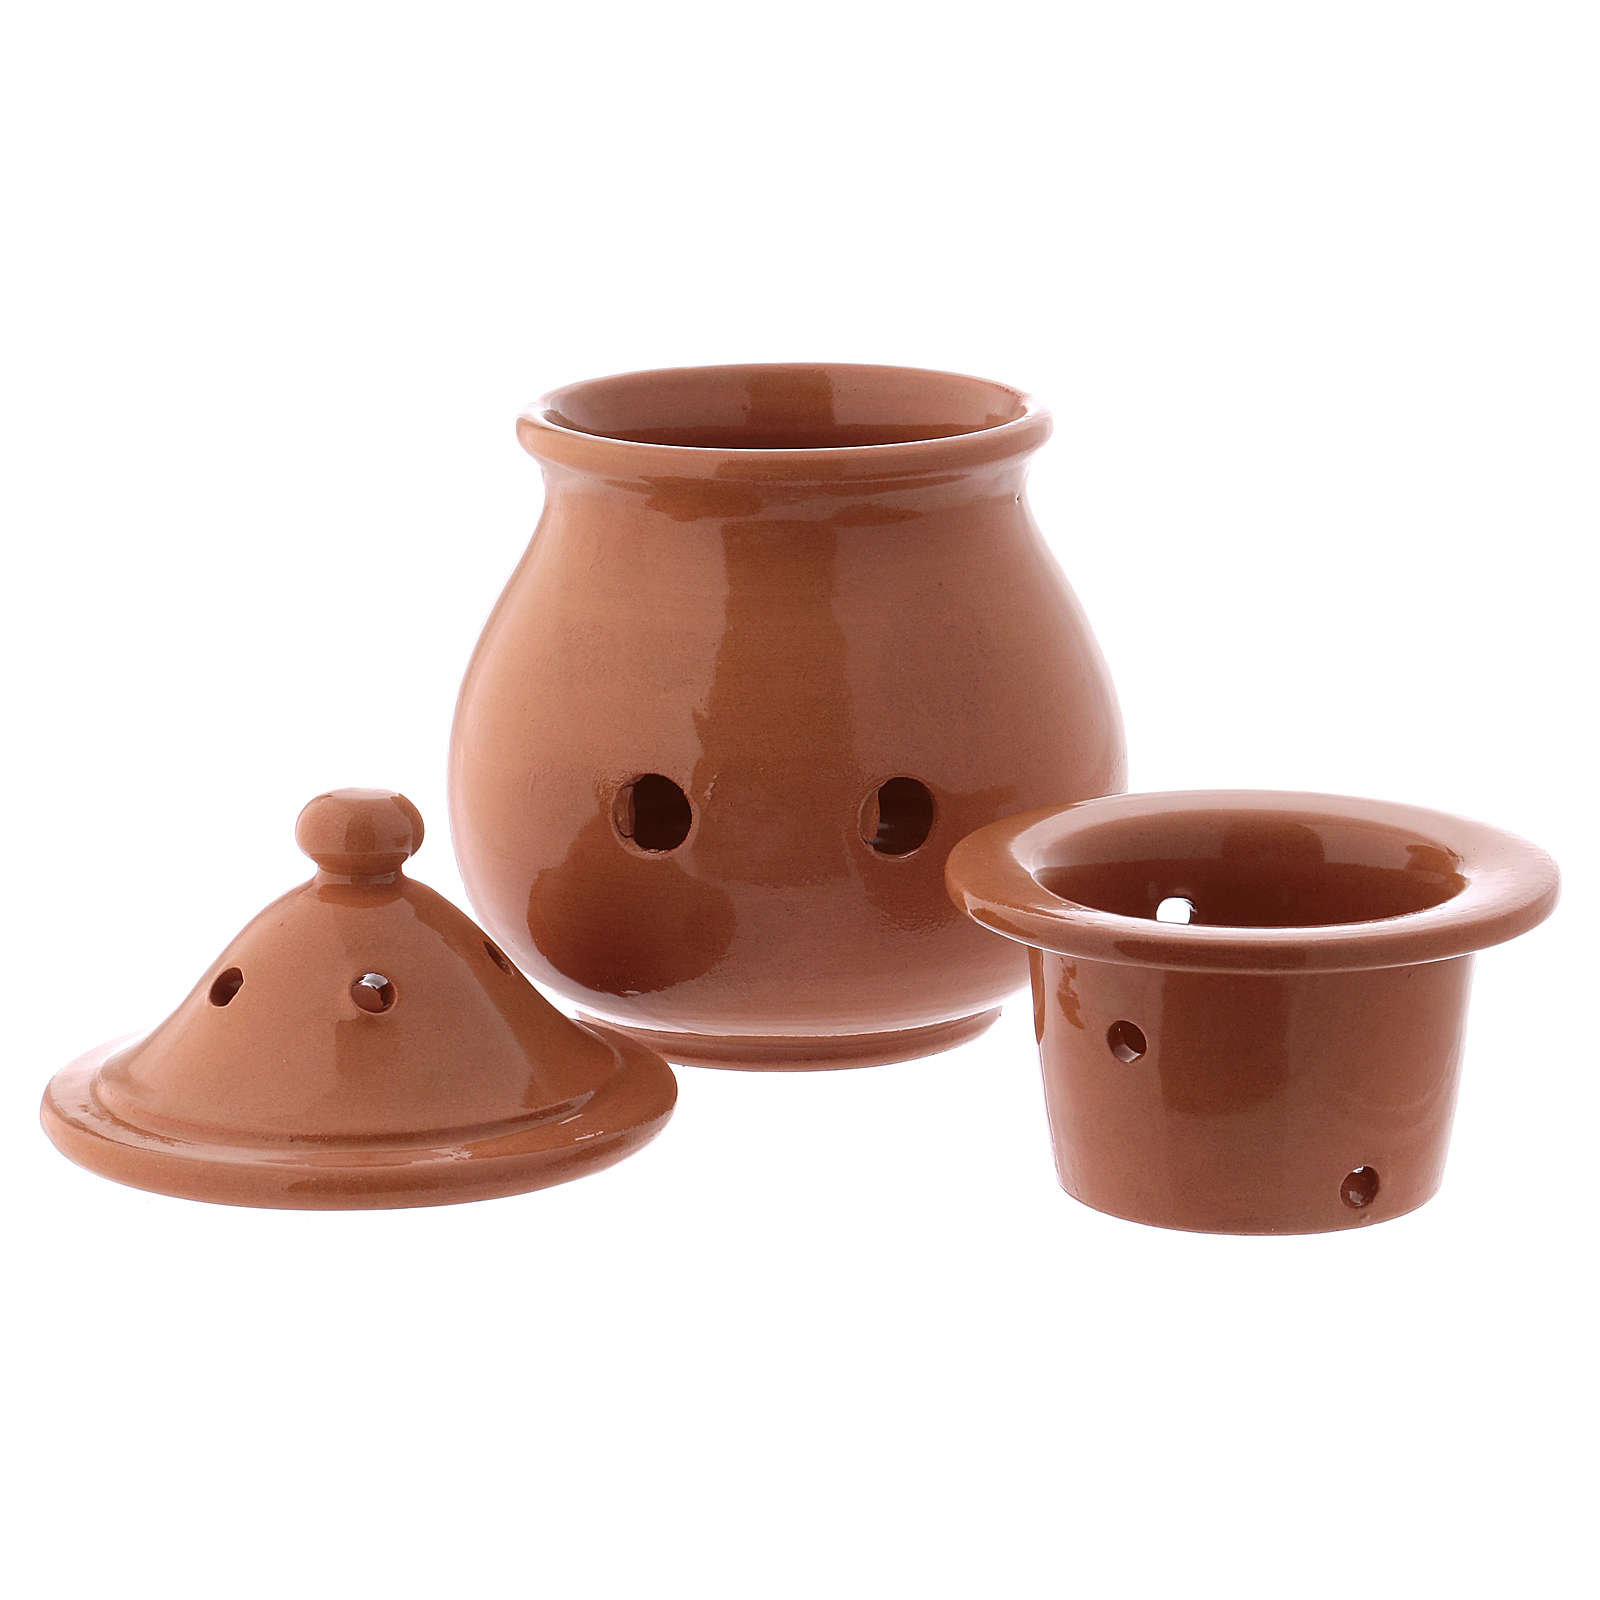 Incense burner in brown terracotta made in Deruta 3